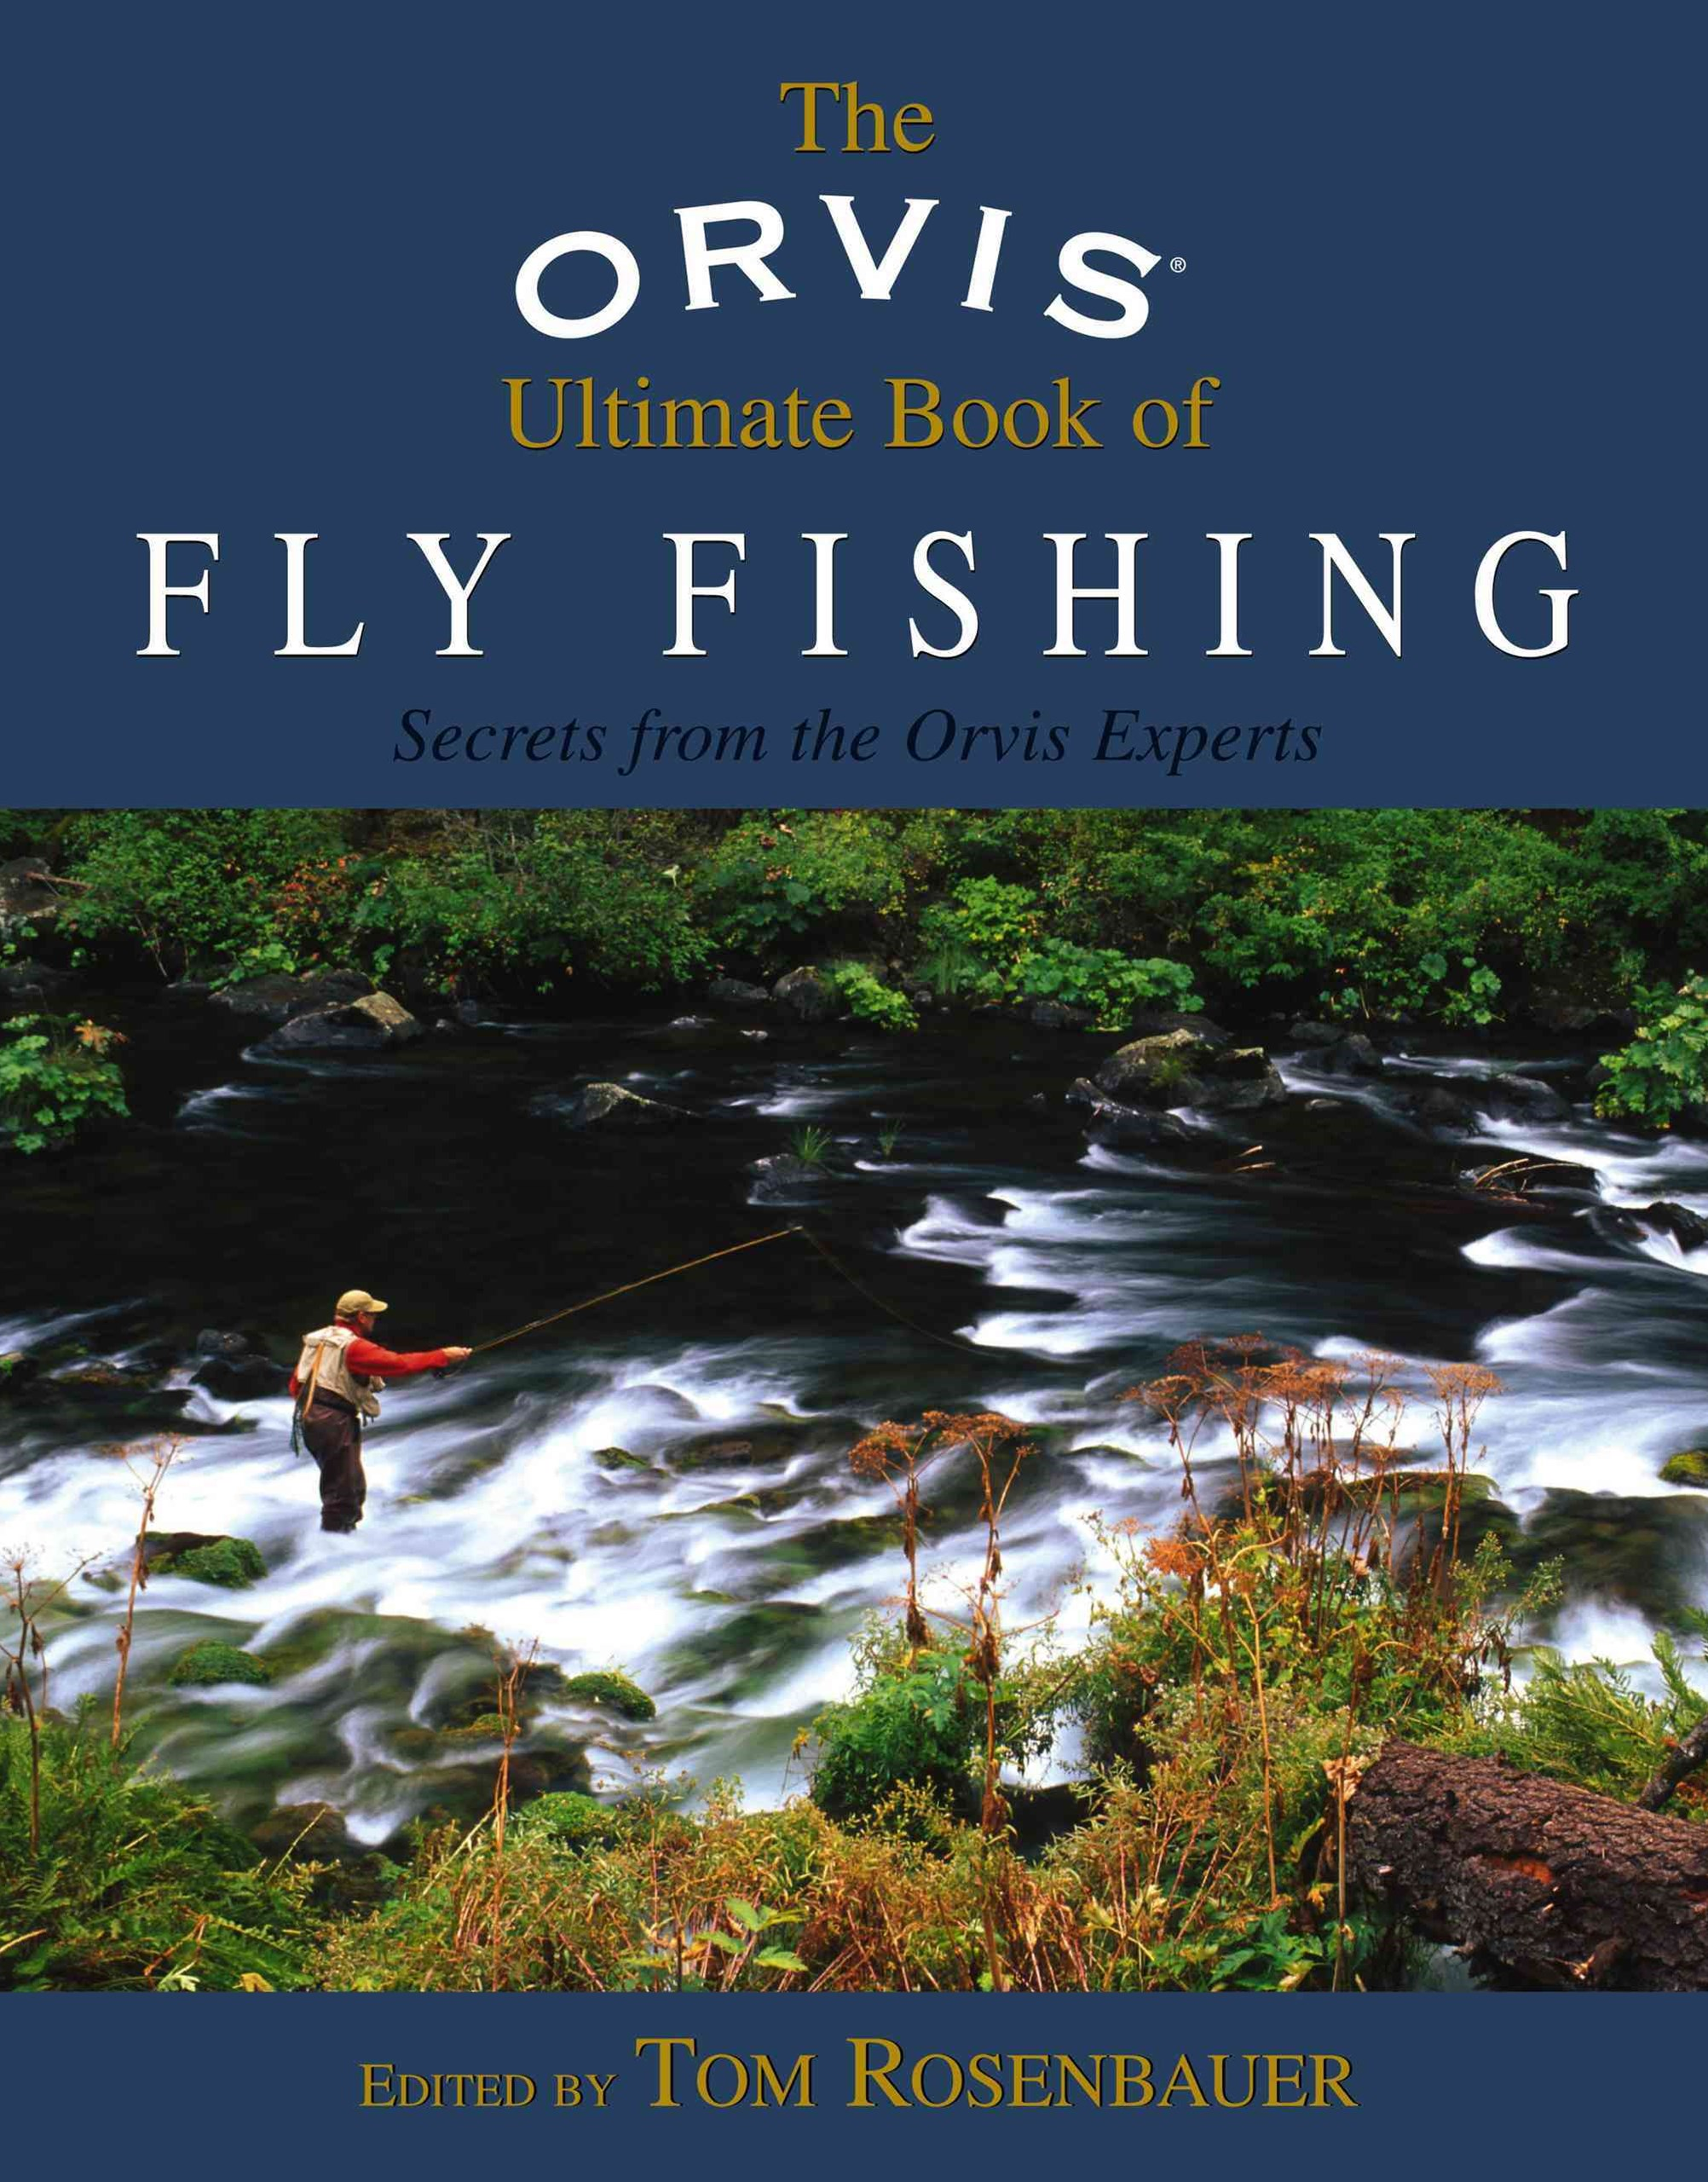 Orvis Ultimate Book of Fly-fishing